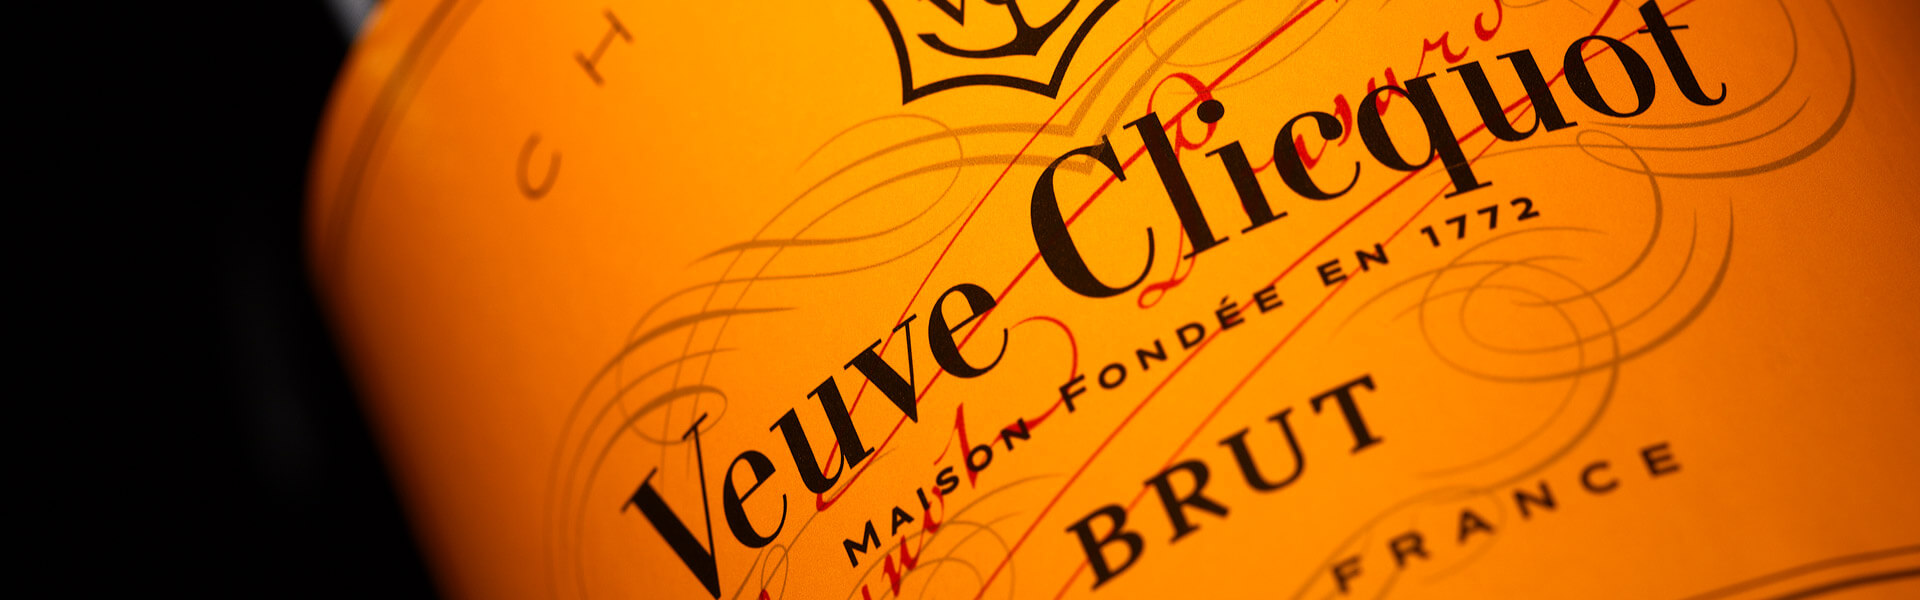 Buy Veuve Clicquot champagne at excellent prices from Australia's premier independent wine merchants Wine Sellers Direct